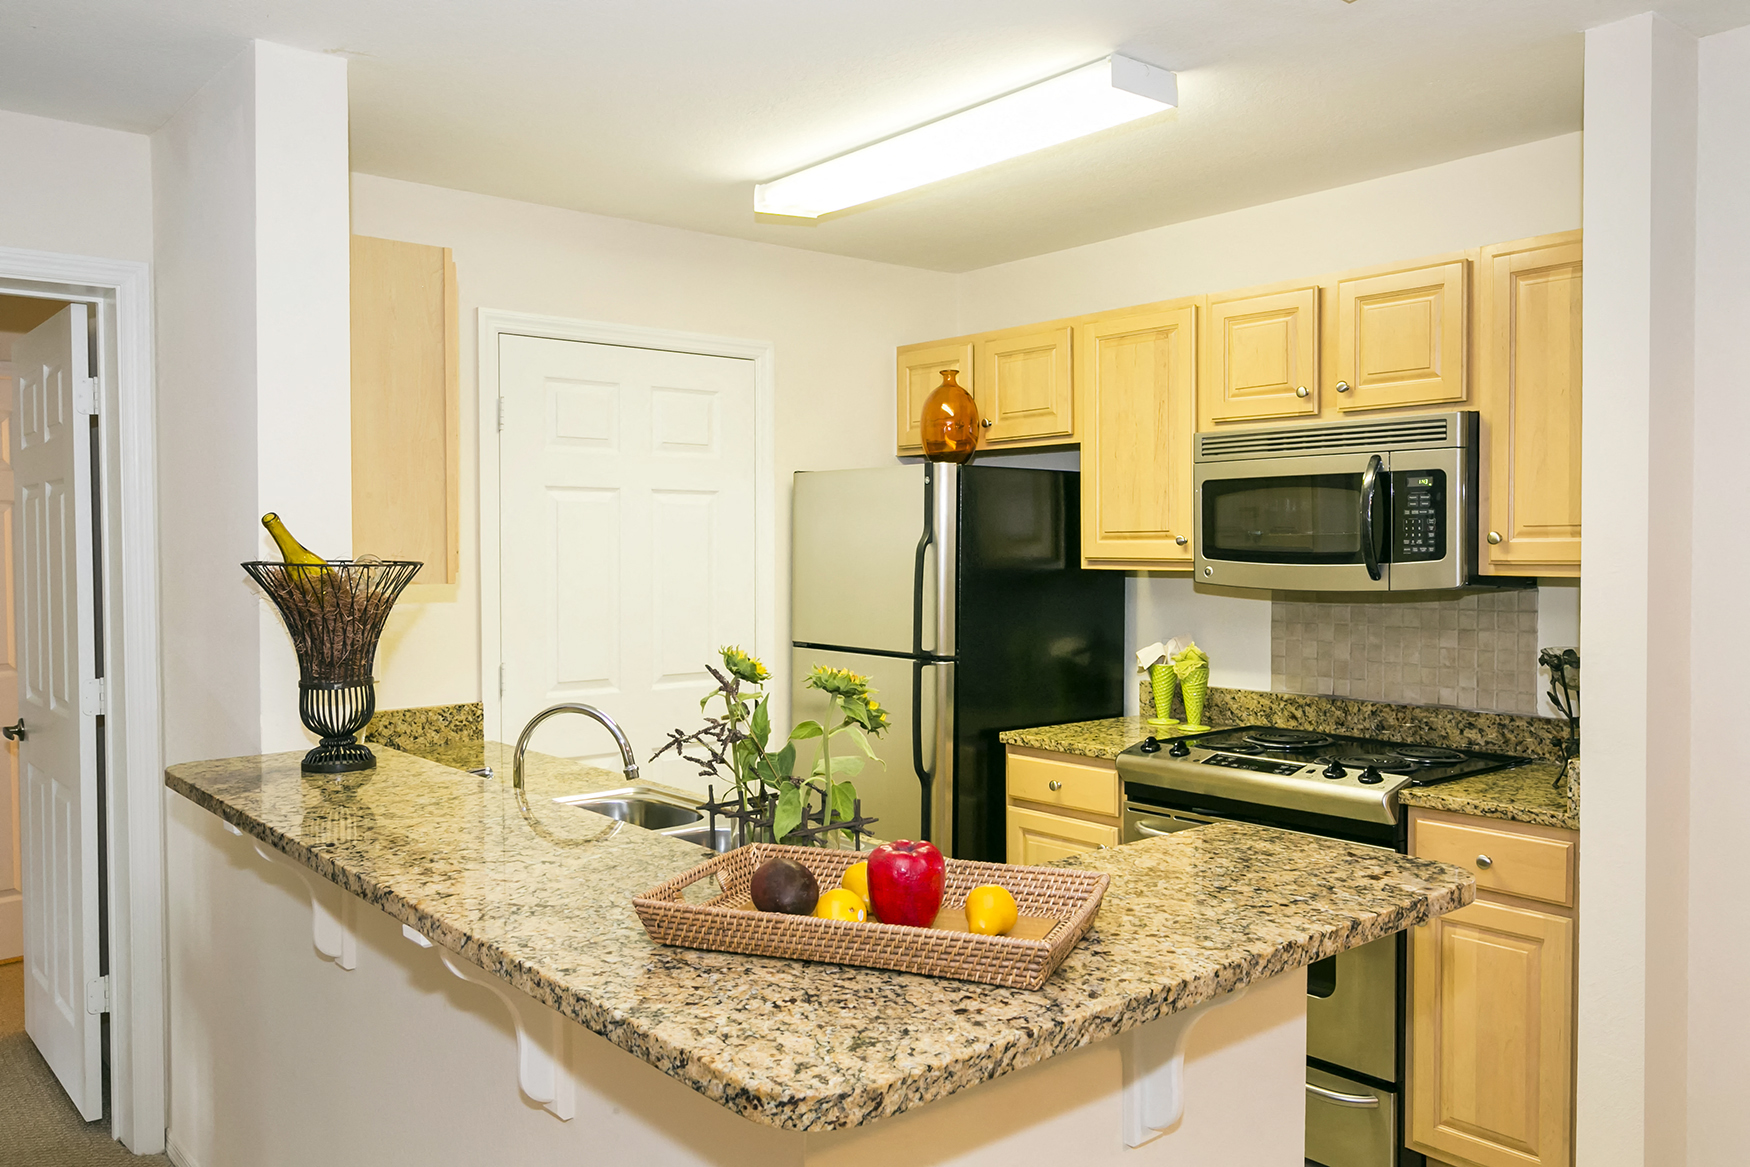 Enterprise Cove Condos for rent in Orange City, FL. Make this community your new home or visit other Concord Rents communities at ConcordRents.com. Kitchen